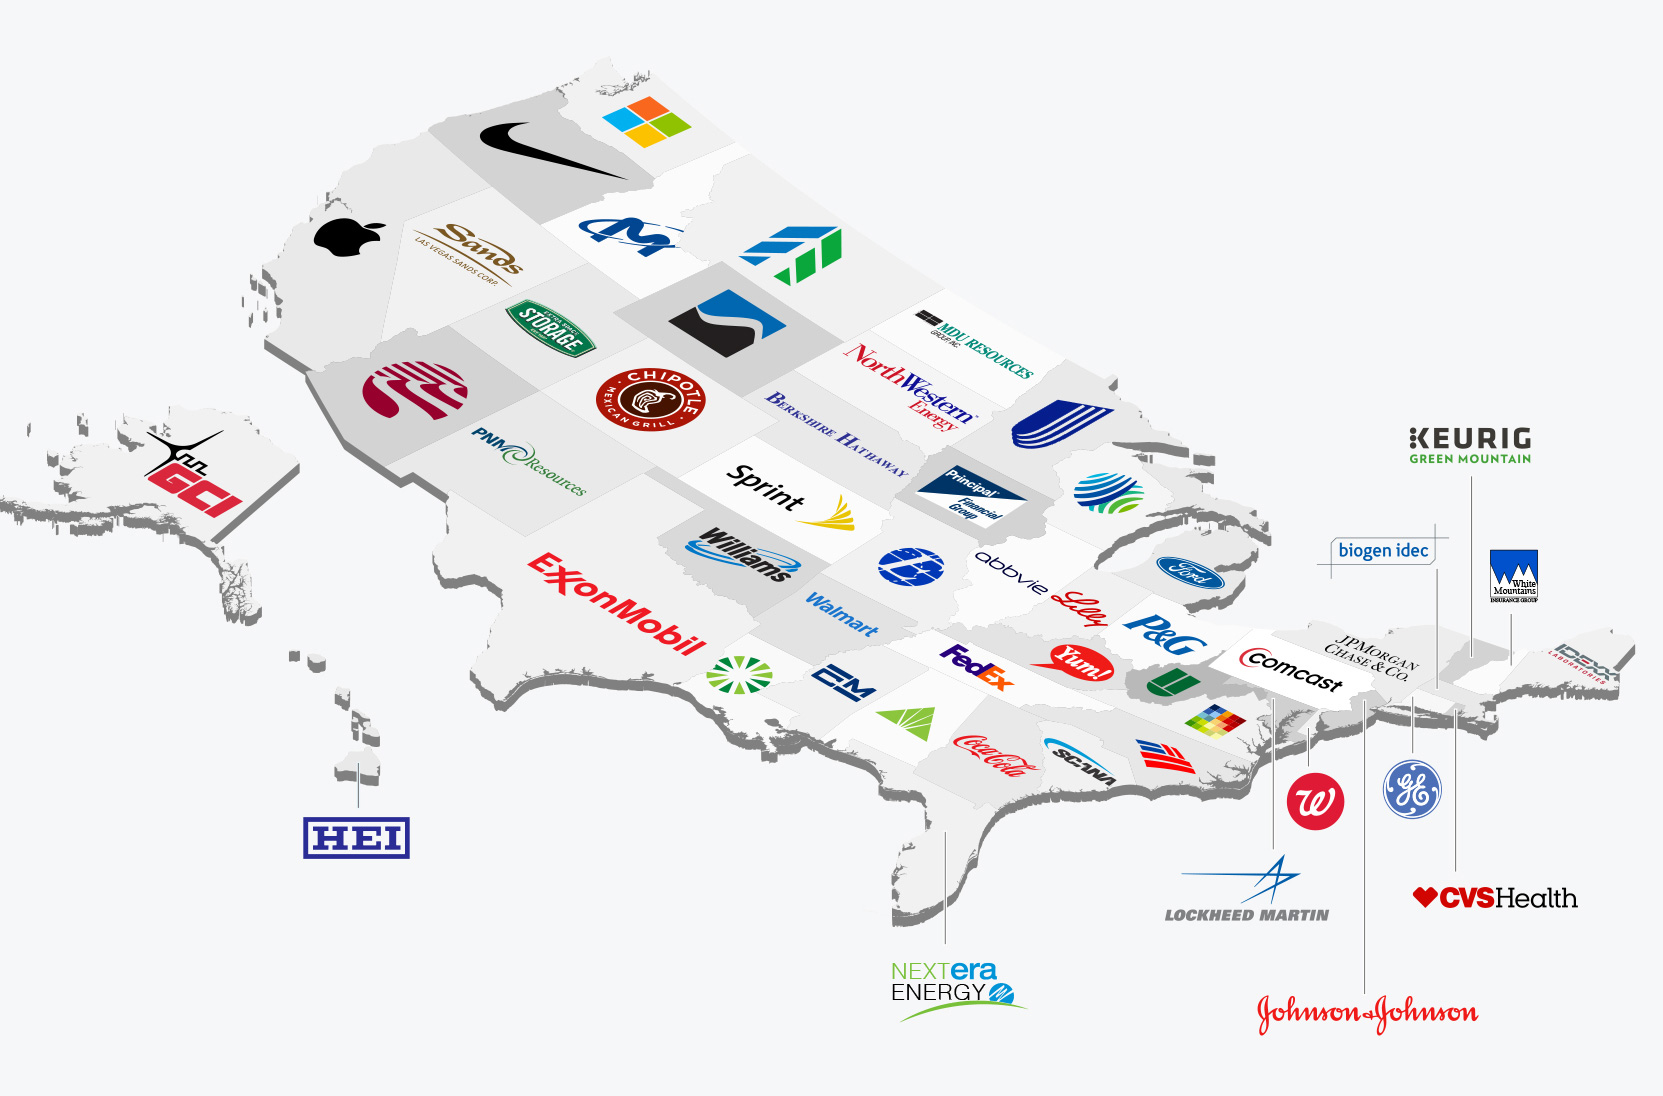 Biggest public company in each U.S. state infographic